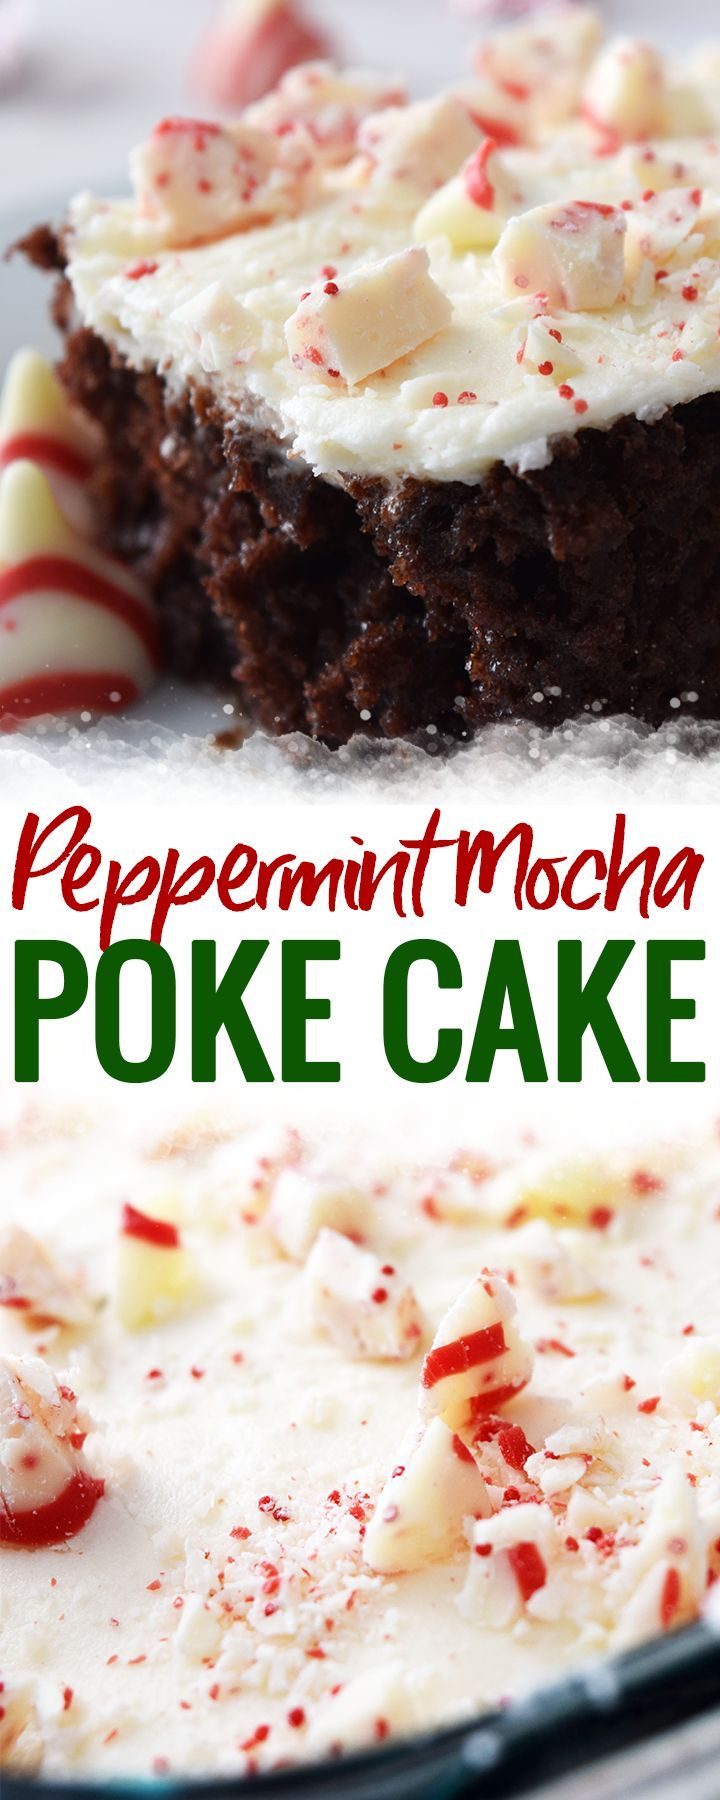 Peppermint Mocha Poke Cake - this yummy and festive holiday dessert brings together peppermint mocha with chocolate cake and peppermint buttercream icing for the perfect Christmas dessert. Plus this poke cake recipe is easy!  #pokecake #cake #christmas #holidaydessert #peppermintmocha #desserts